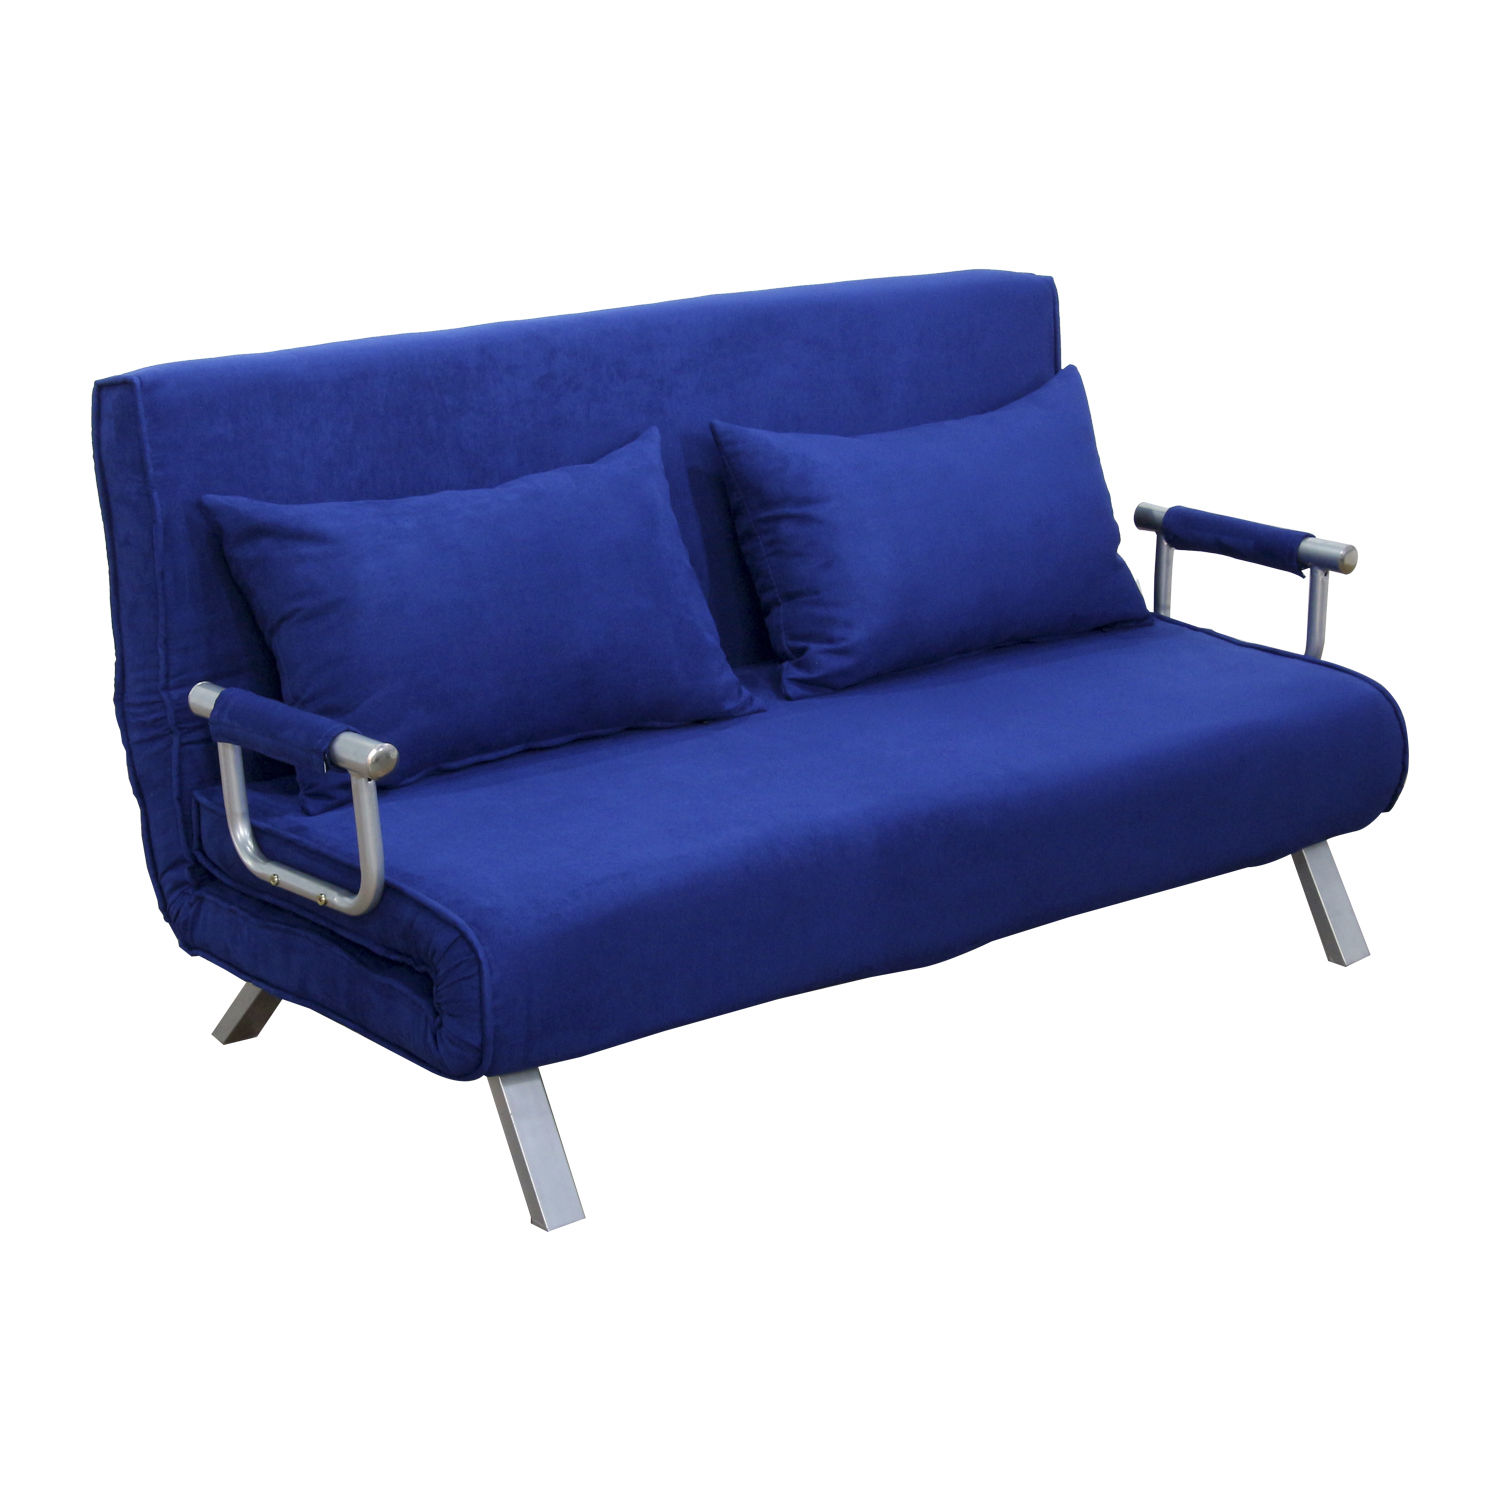 Homcom 61 Quot Folding Futon Sleeper Couch Sofa Bed Blue